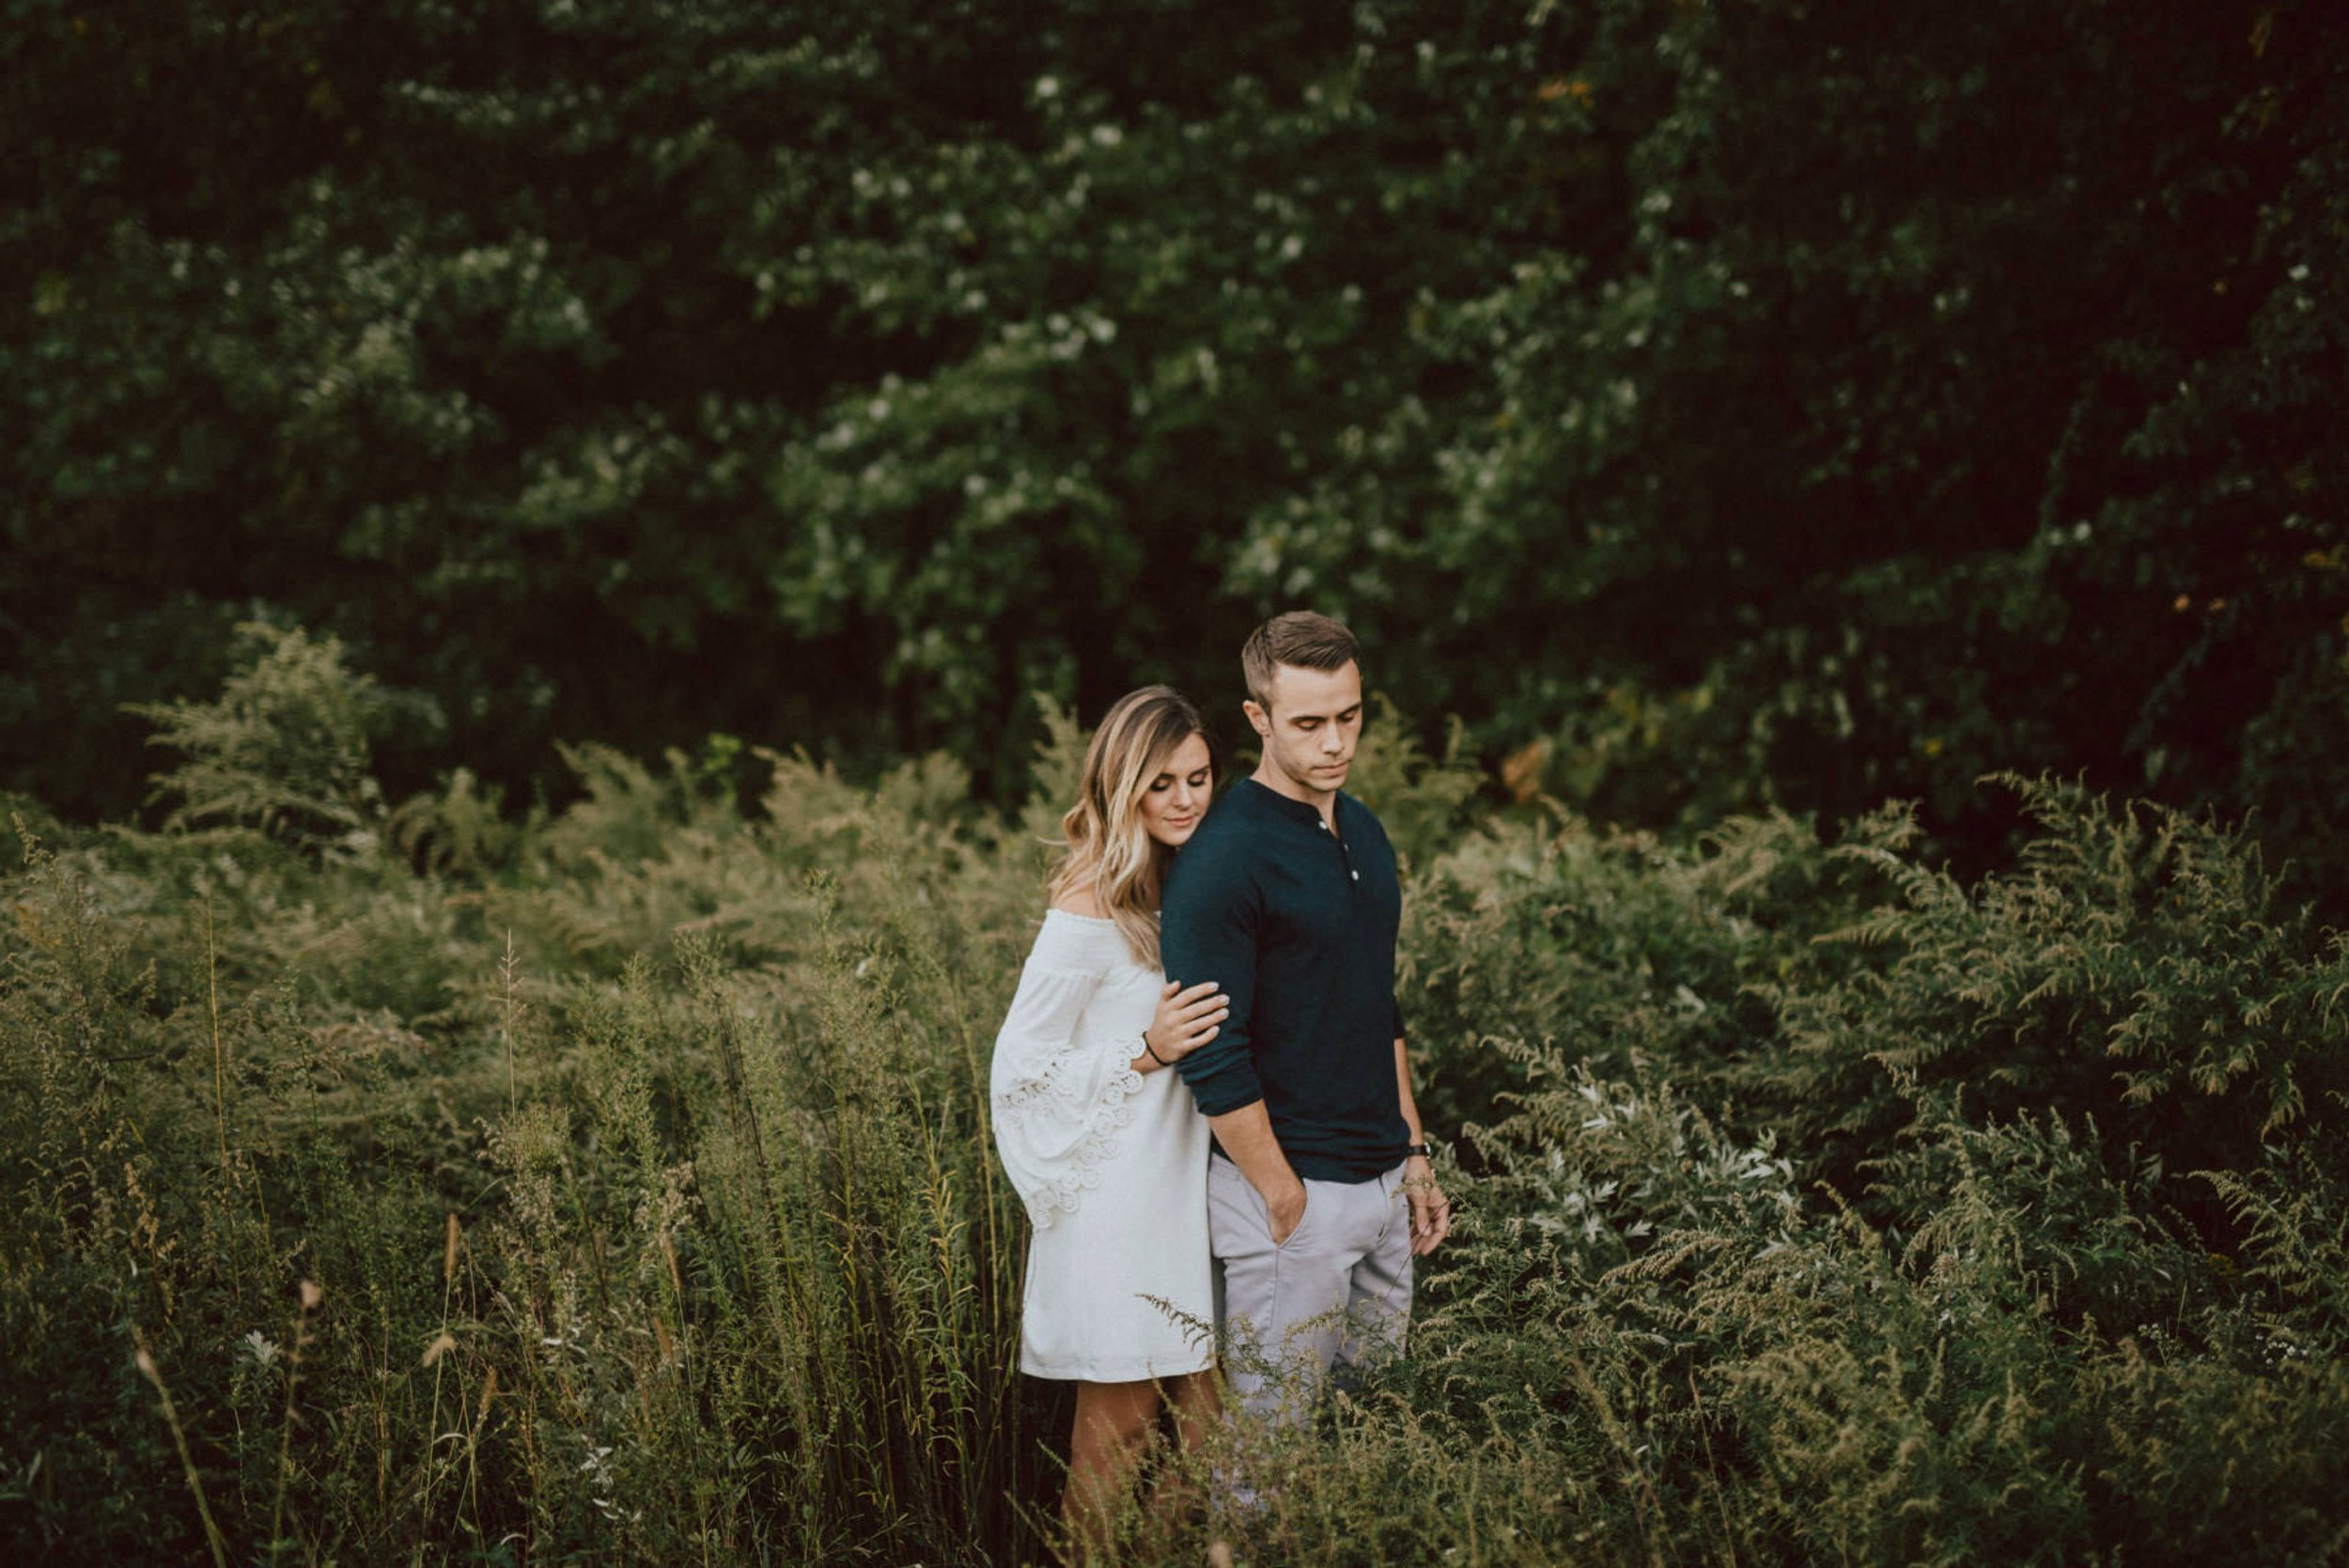 elkton-maryland-engagement-session-21.jpg